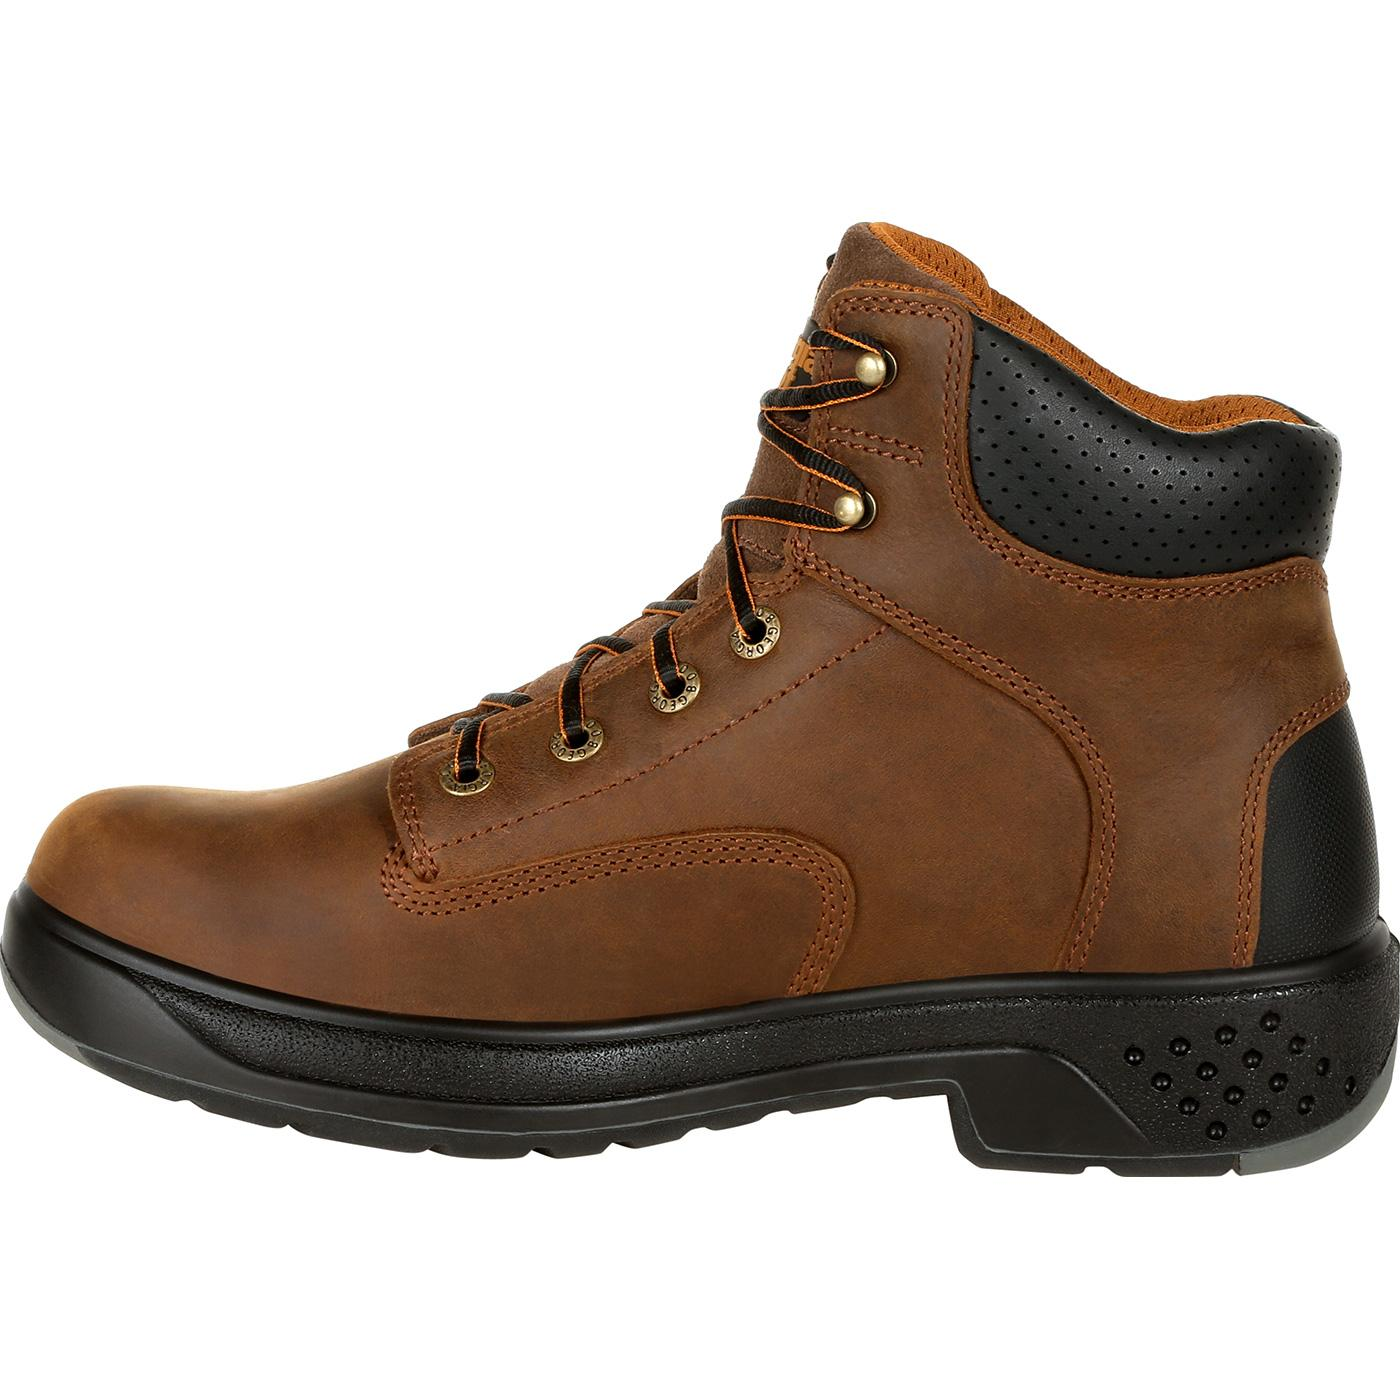 Mens Comfortable Boots For Work 28 Images S Lacrosse